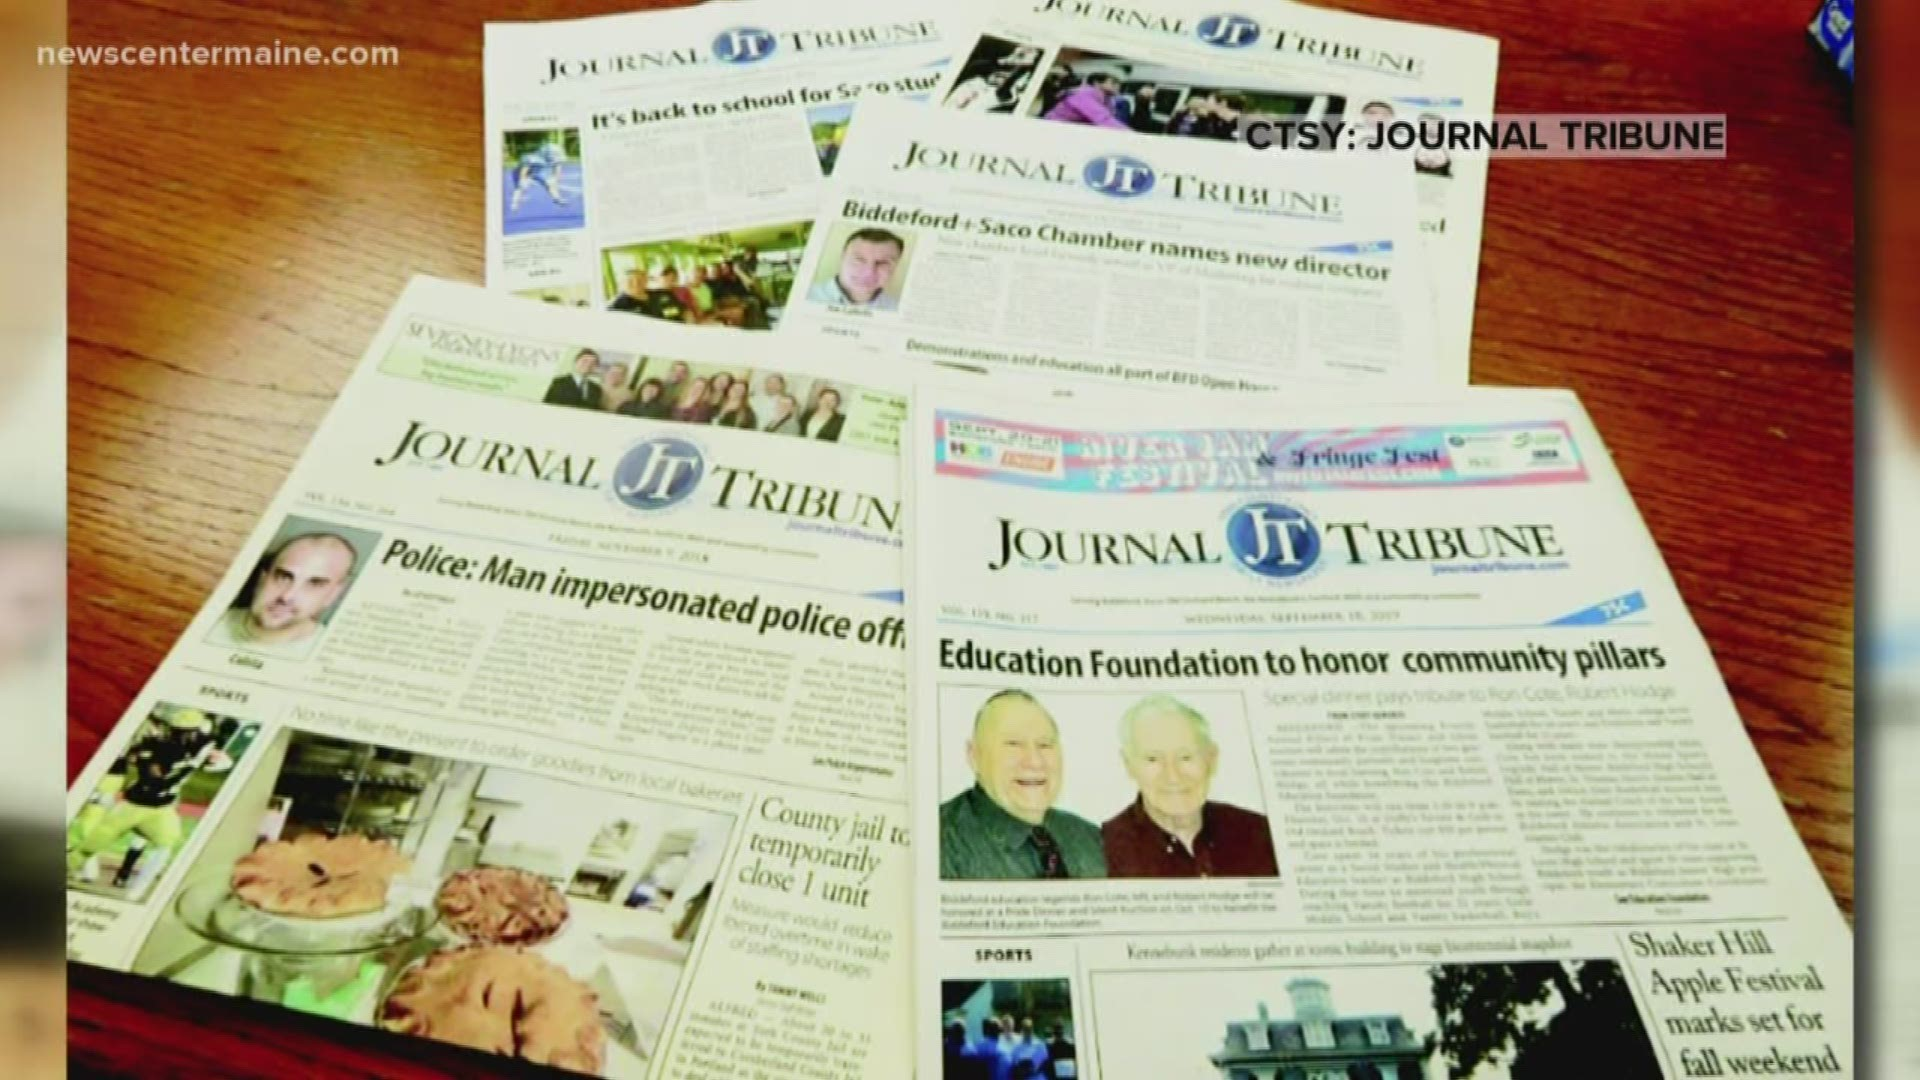 Journal Tribune To Cease Publication After 135 Years Newscentermaine Com